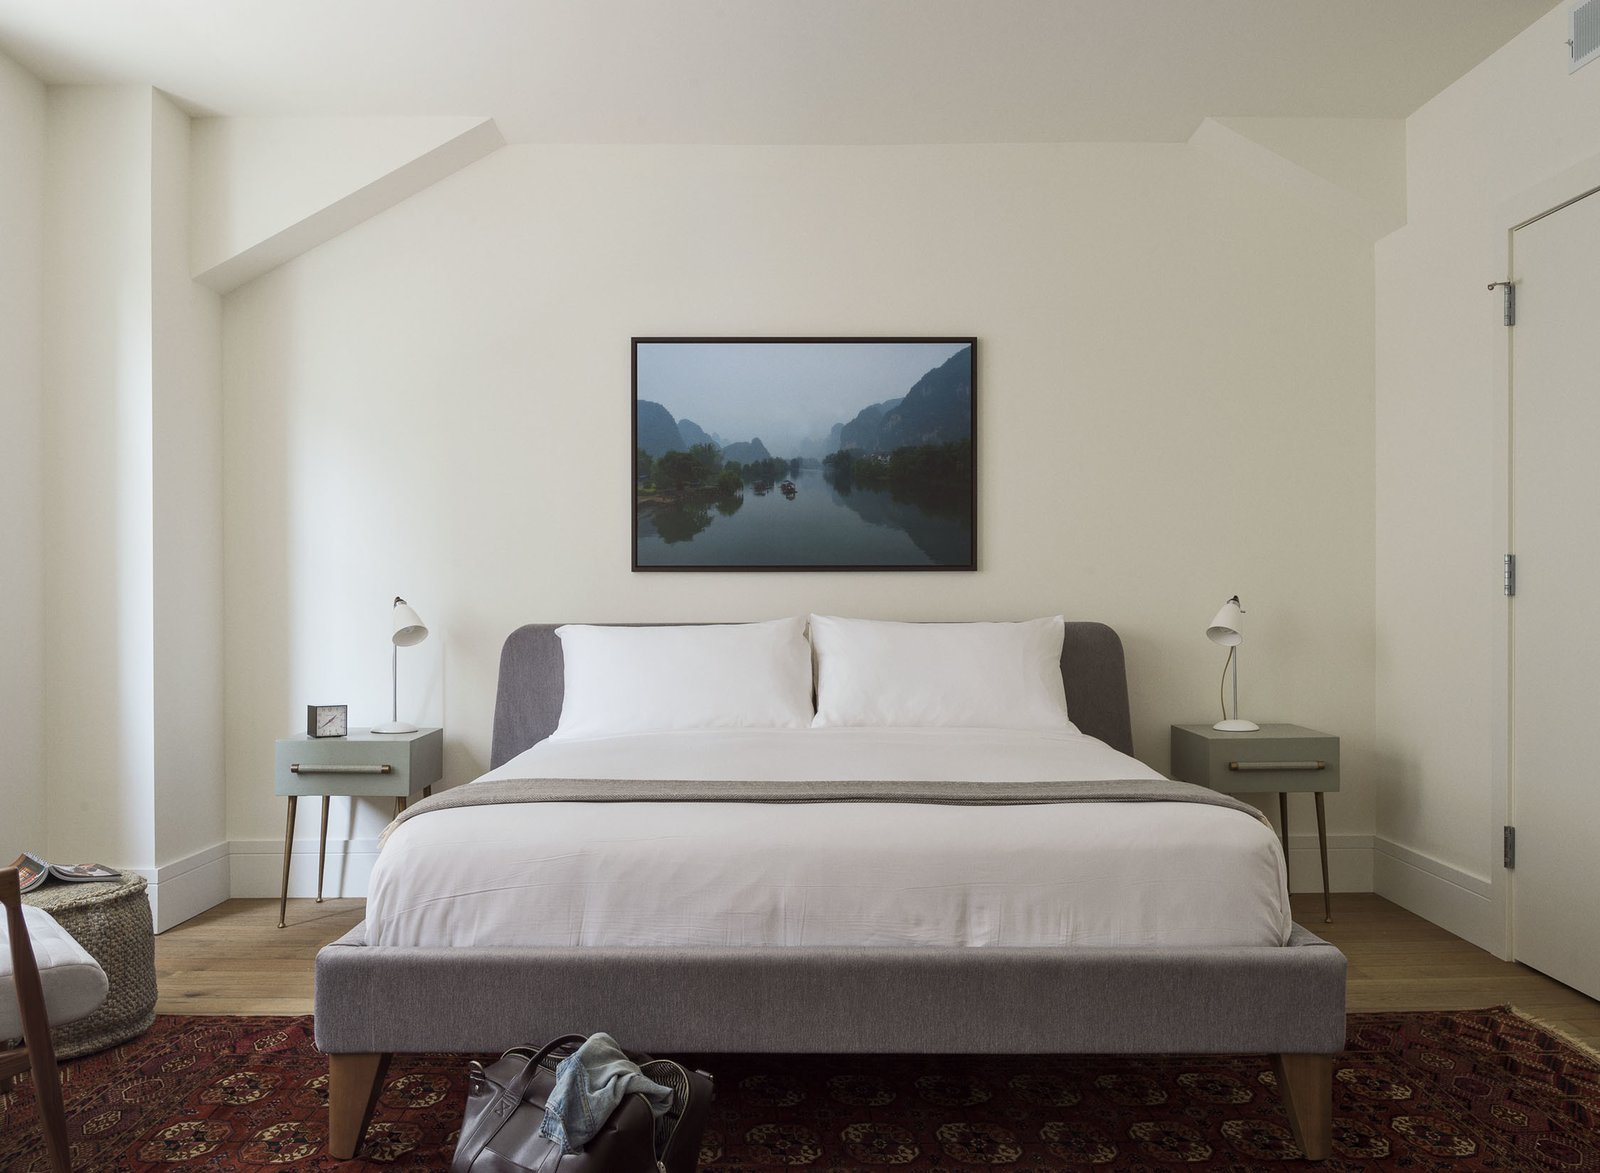 The custom artwork is from LUMAS and the bedside tables are Chelsea Textile. The apartments also contain Bosch washers and dryers.  Bedrooms by Dwell from For a Week or Month, You Can Pretend This Hotel Is Your Own Modern Apartment